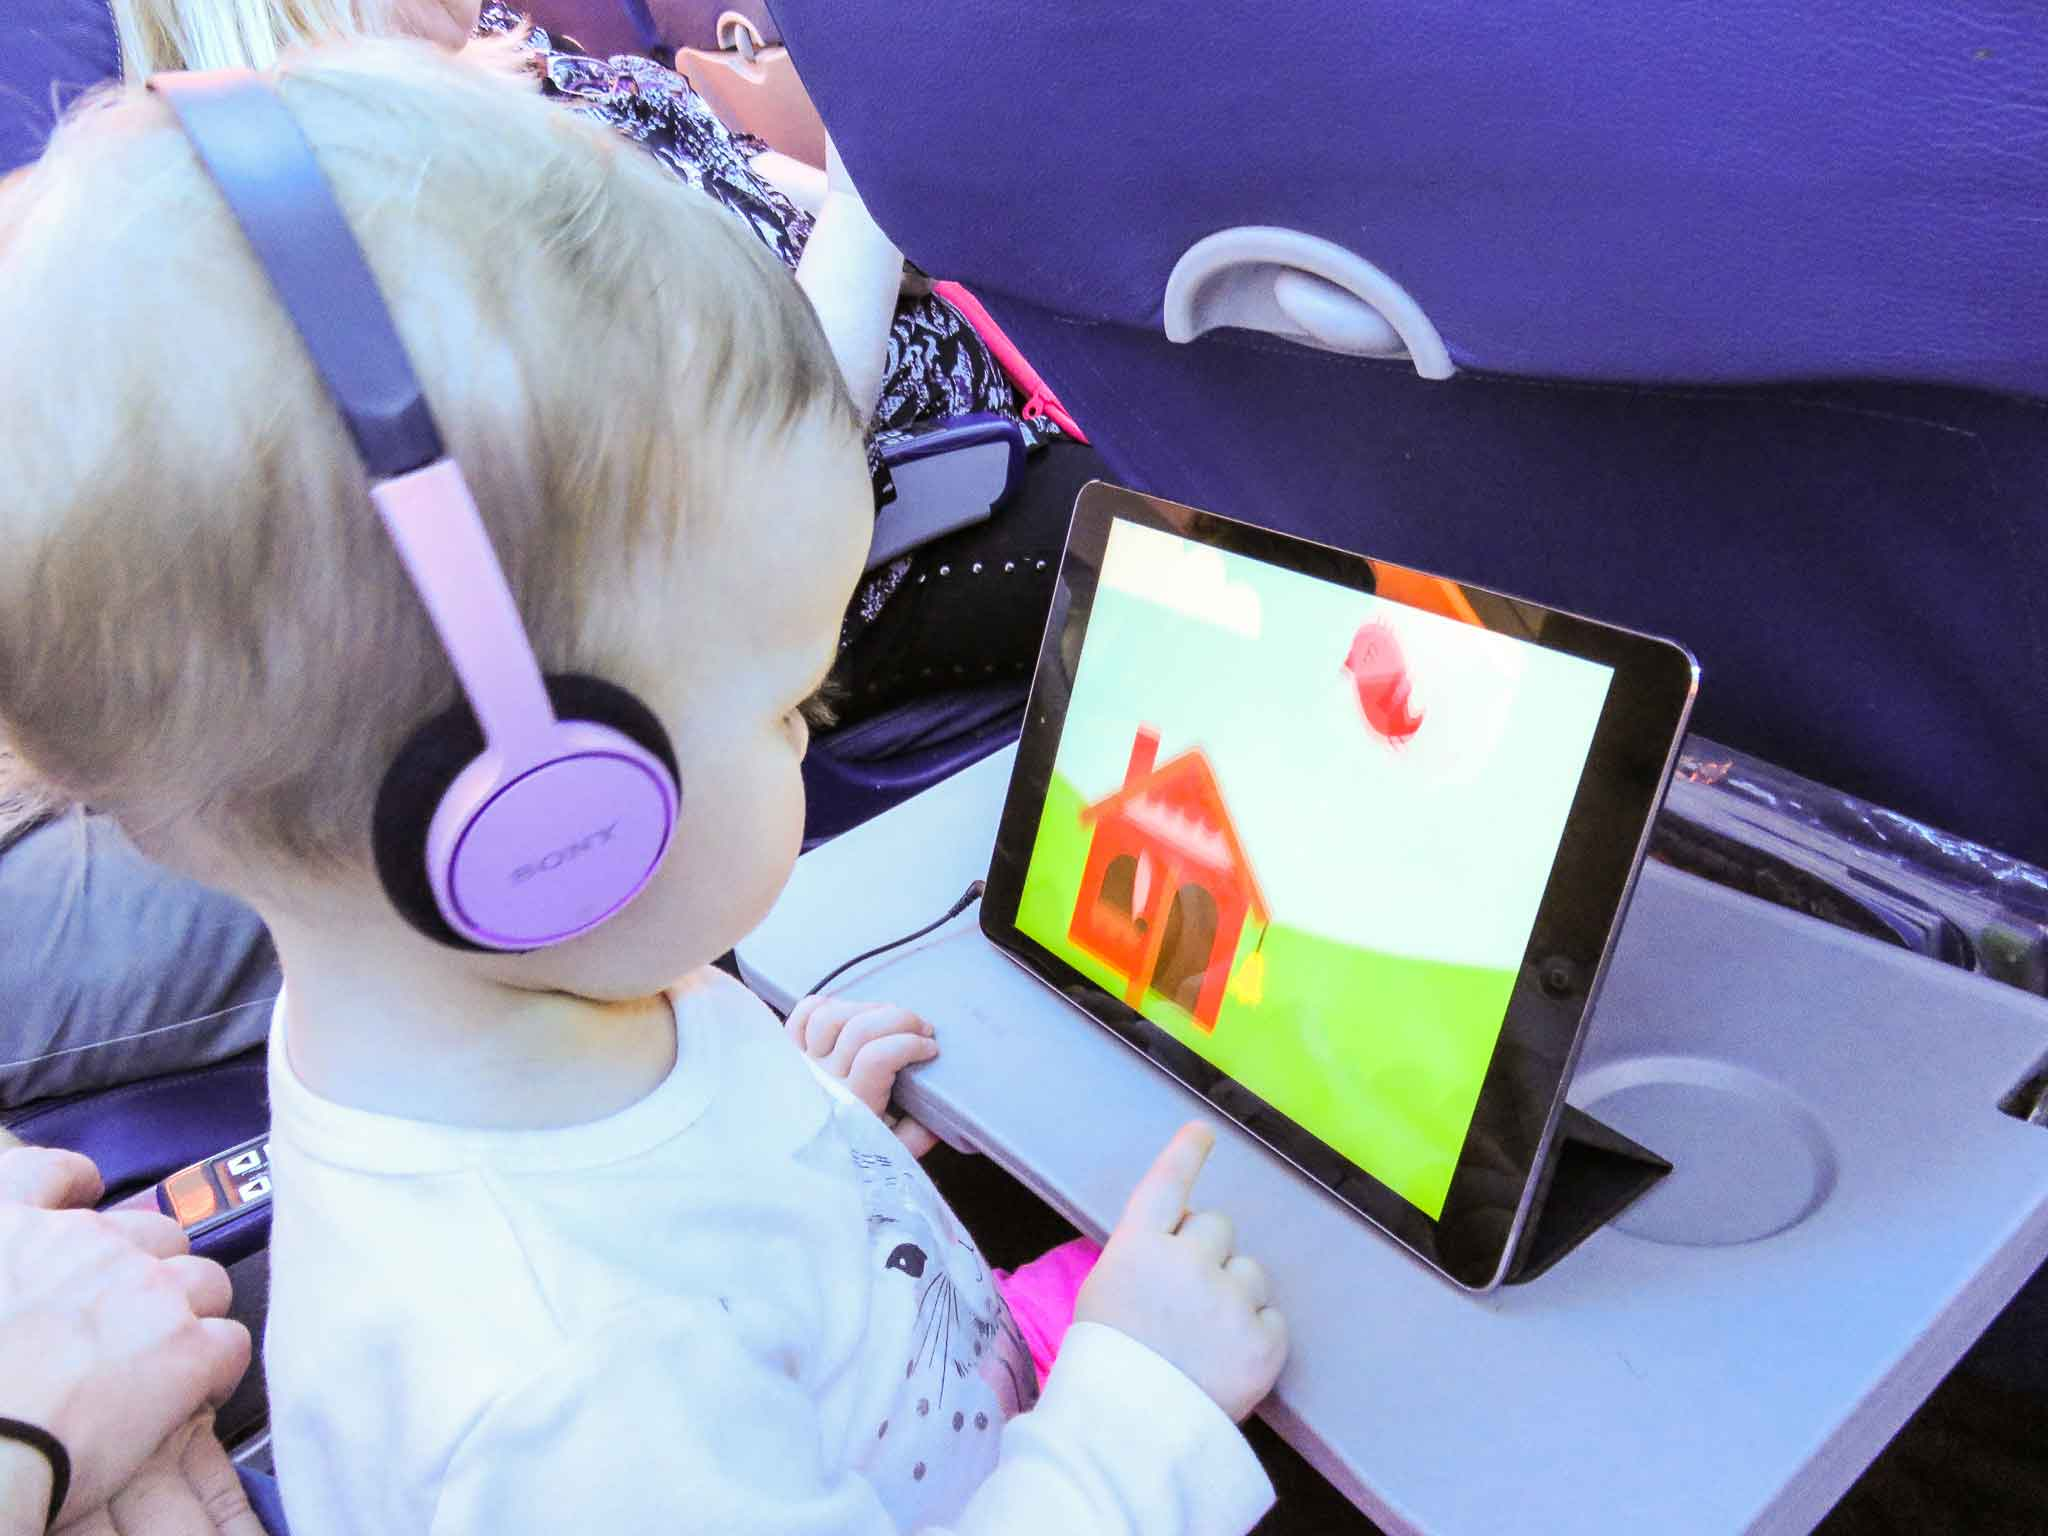 Baby-Can-Travel---Inflight-Entertainment-for-Babies,-Toddlers-and-Preschoolers---Forest-Flyer-iPad-App